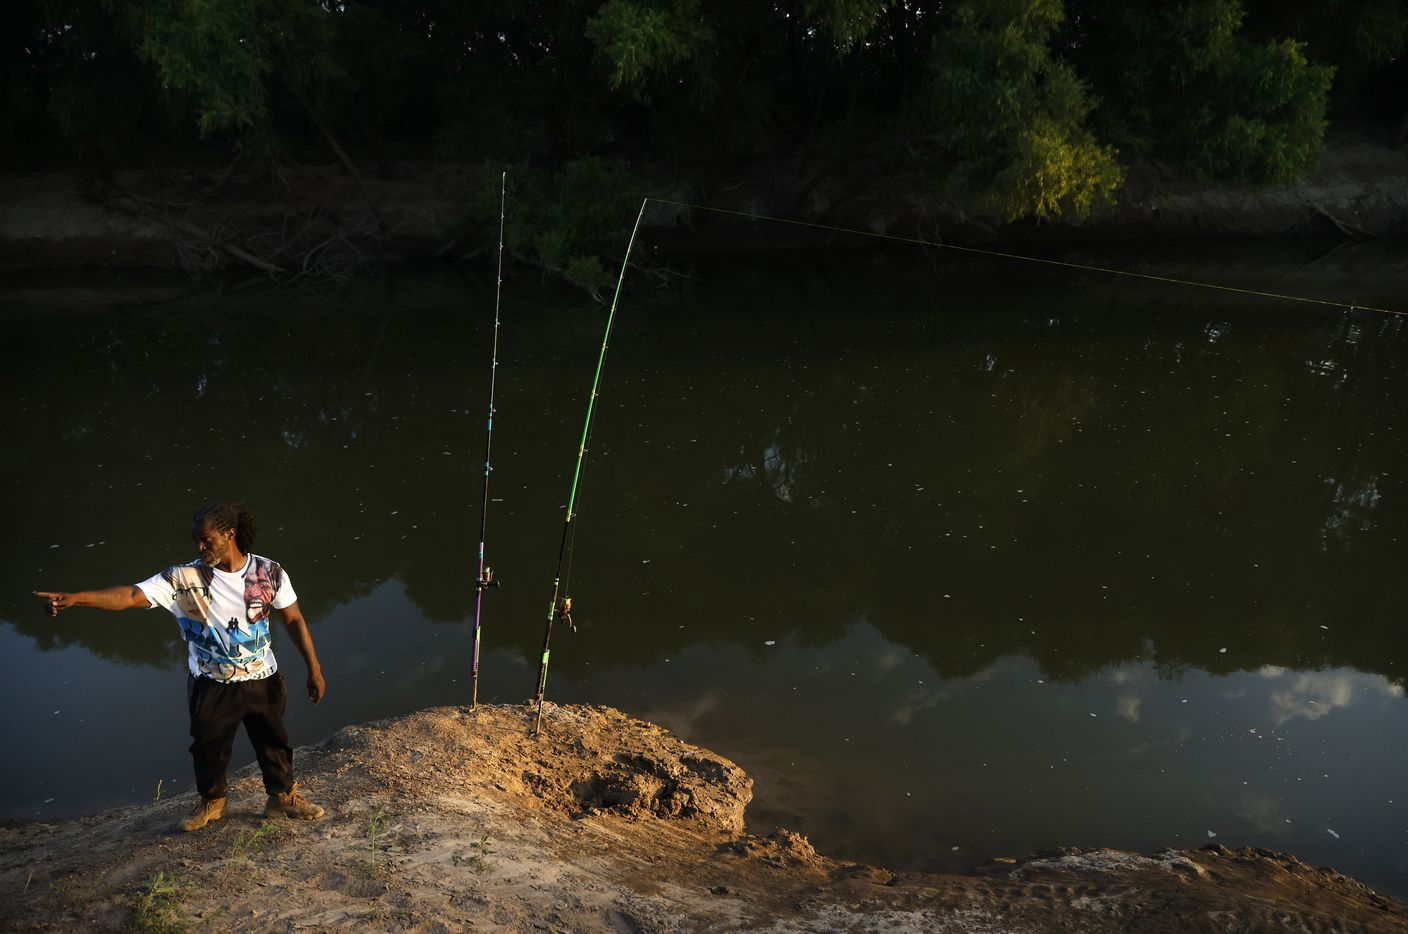 Odell Allen sets his 12 ft rods on the banks of the Trinity River hoping to catch an alligator gar Monday, August 30, 2021.  Texas Parks and Wildlife Department is adding new regulations to limit how many gar each angler can harvest in a year because of overfishing of the native species. (Tom Fox/The Dallas Morning News)